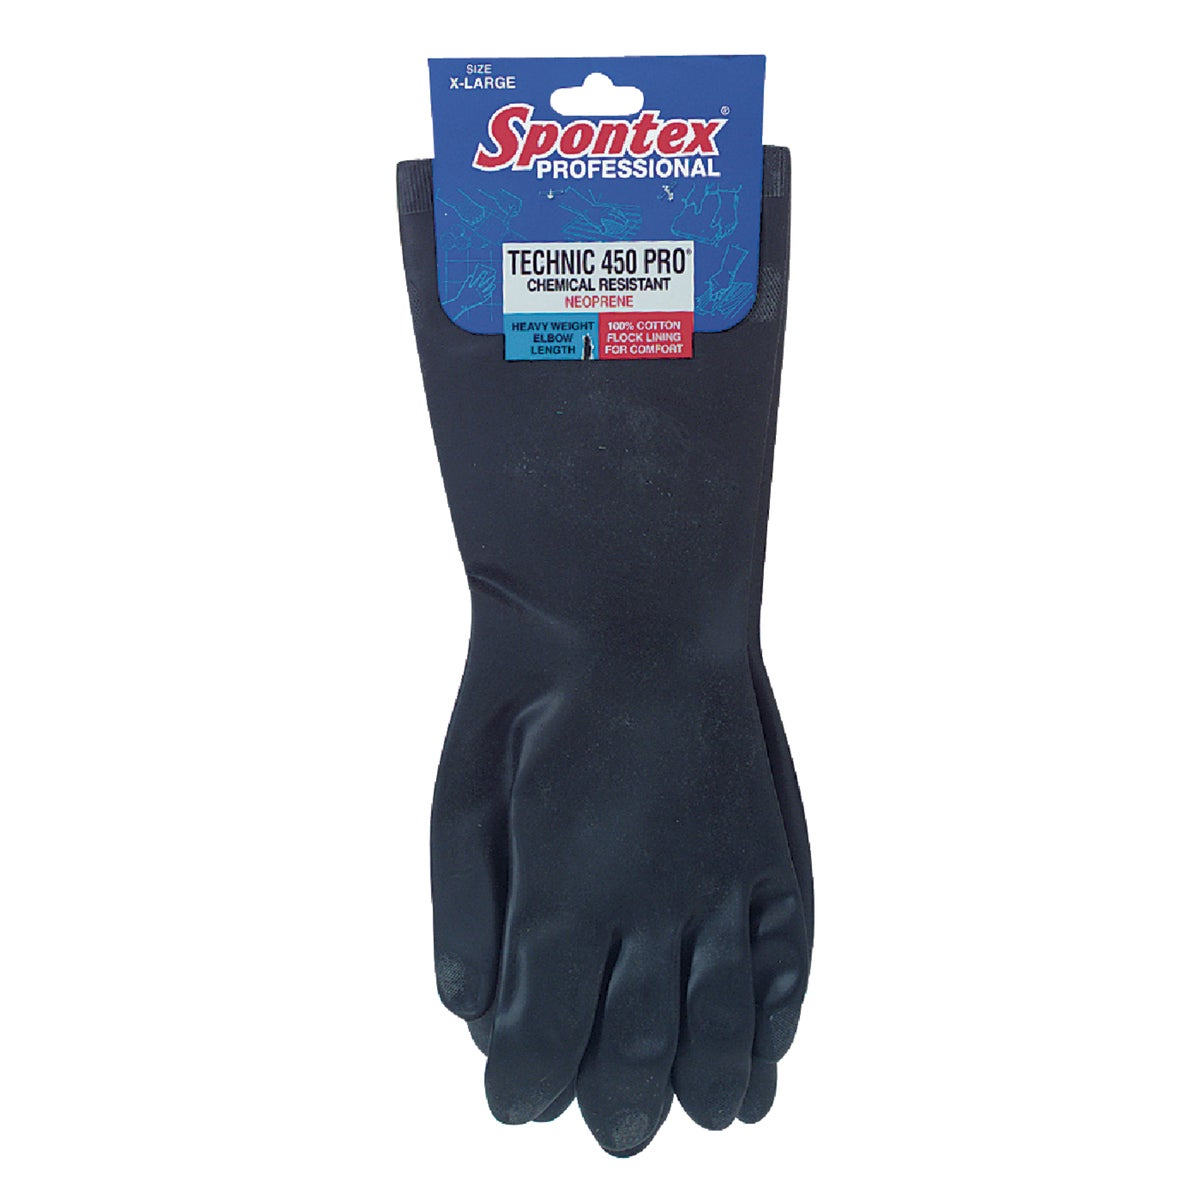 LARGE RUBBER GLOVES - 33555 by Lehigh Spontex